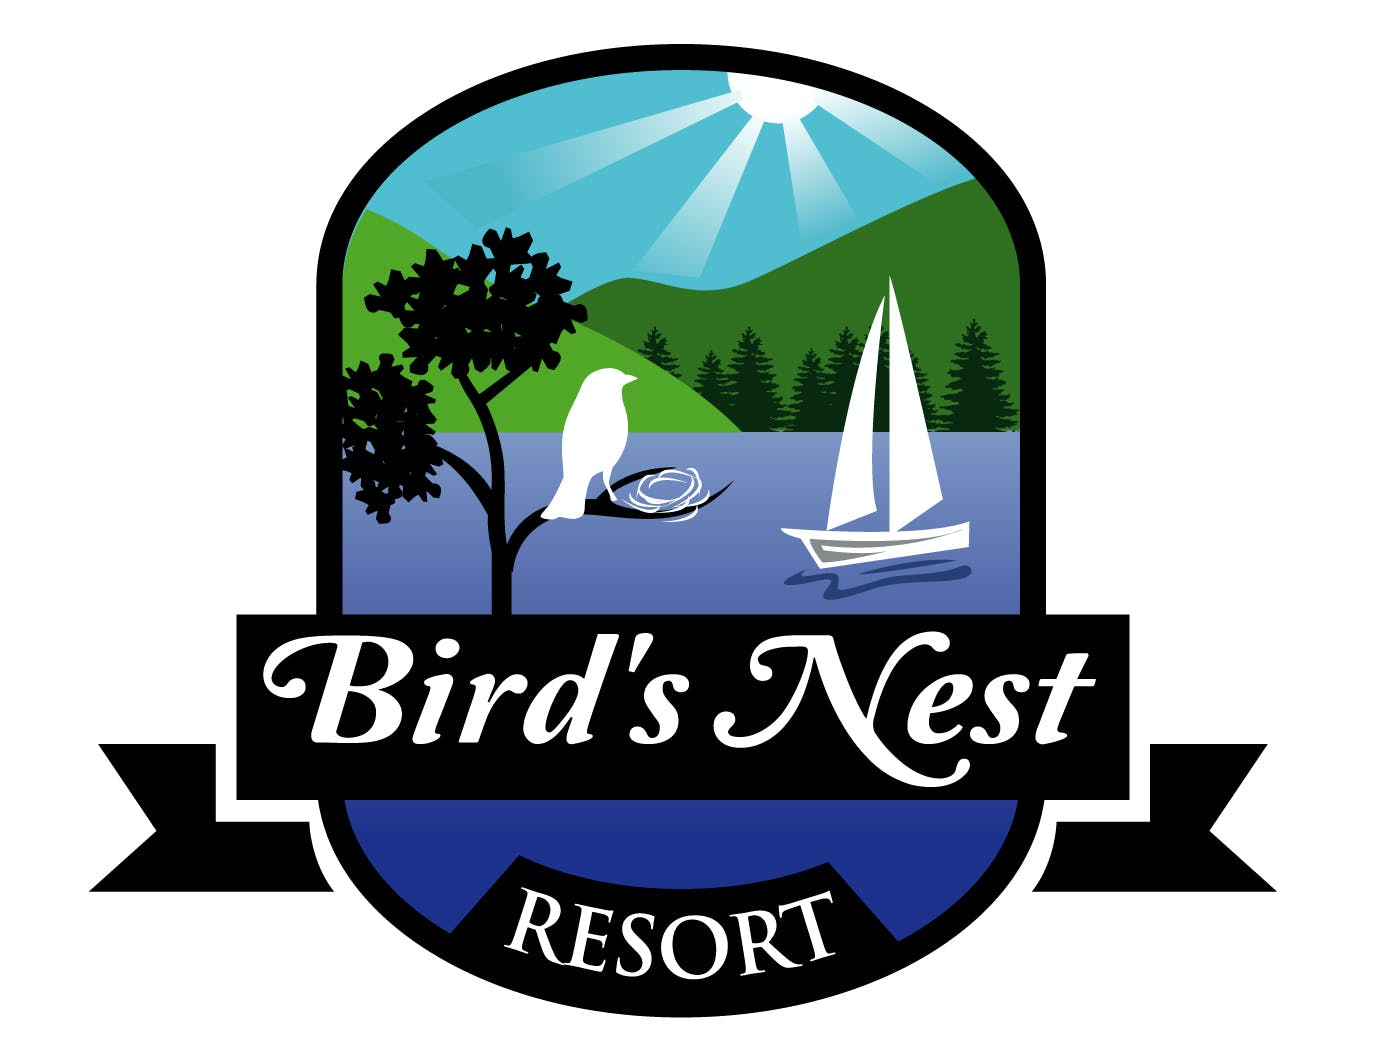 Bird's Nest Resort